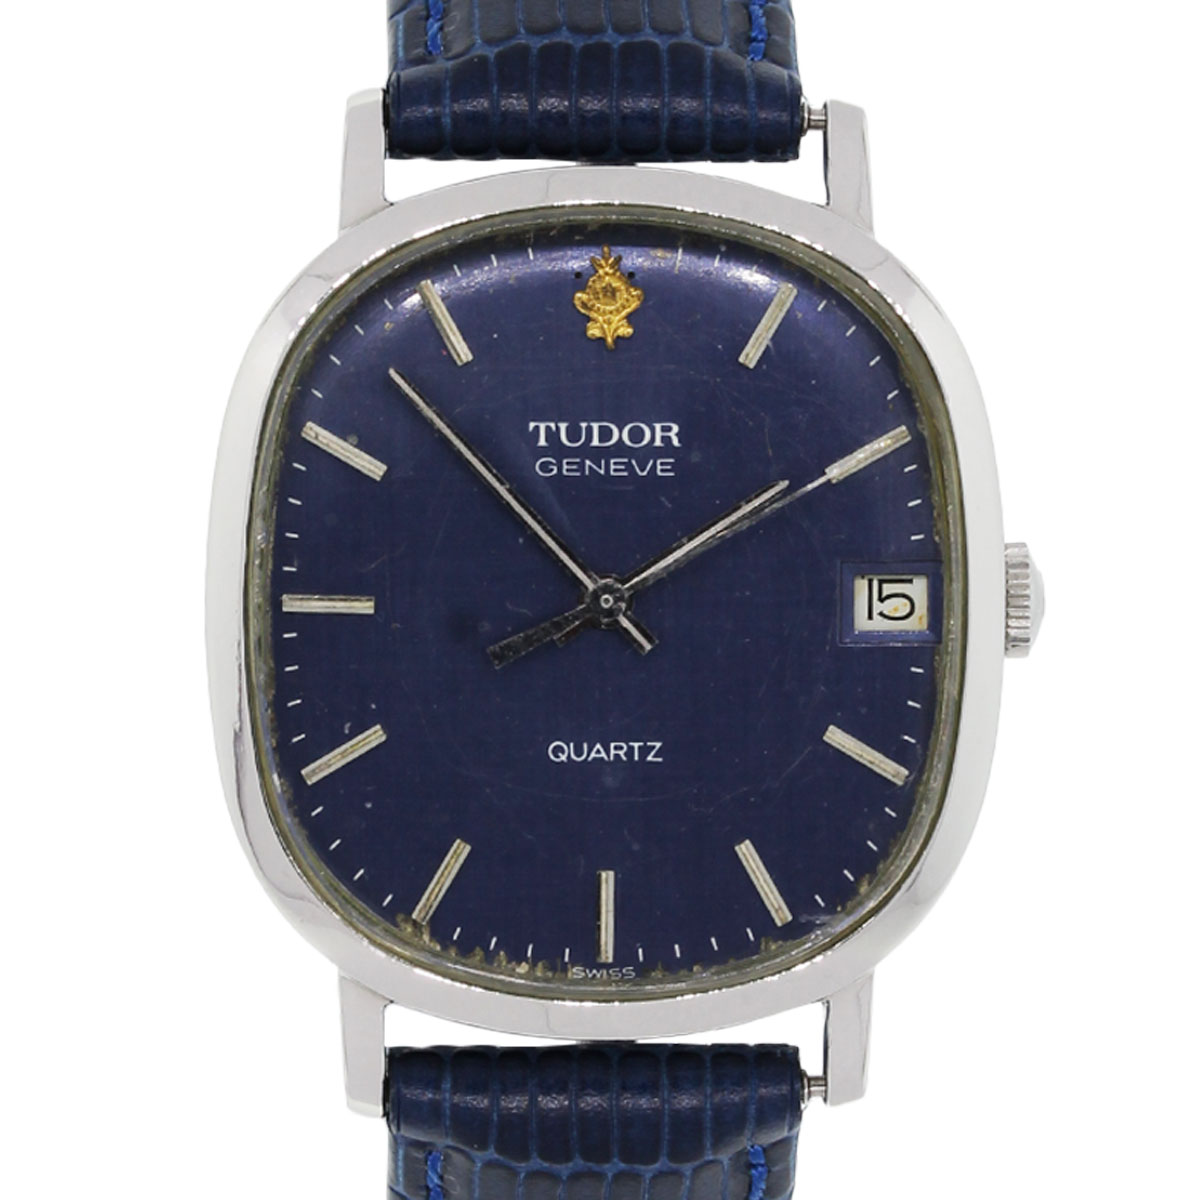 Tudor geneve blue dial quartz vintage watch for Tudor geneve watches